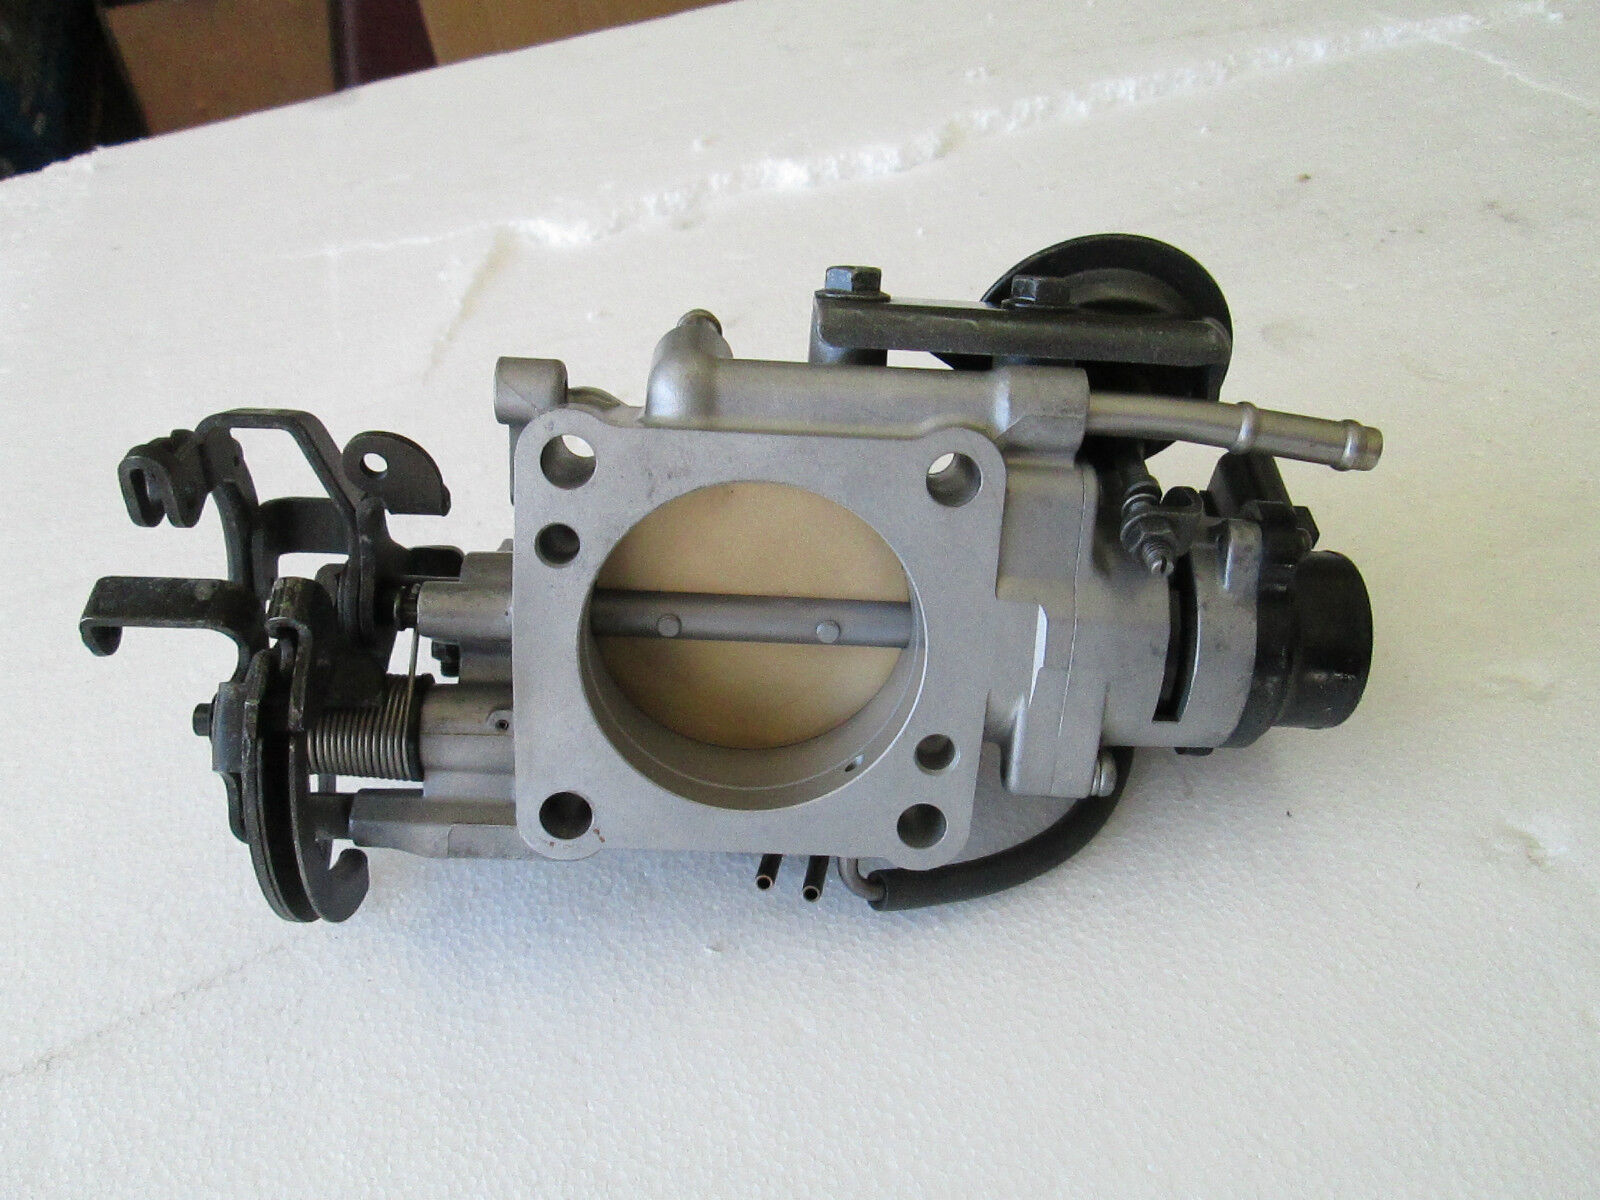 92 93 Es300 Camry Throttle Body 30l V6 Ebay 1993 Toyota Engine Parts Diagram This Item Fits On A Lexus Tps Sensor In Very Good Working Condition Like New